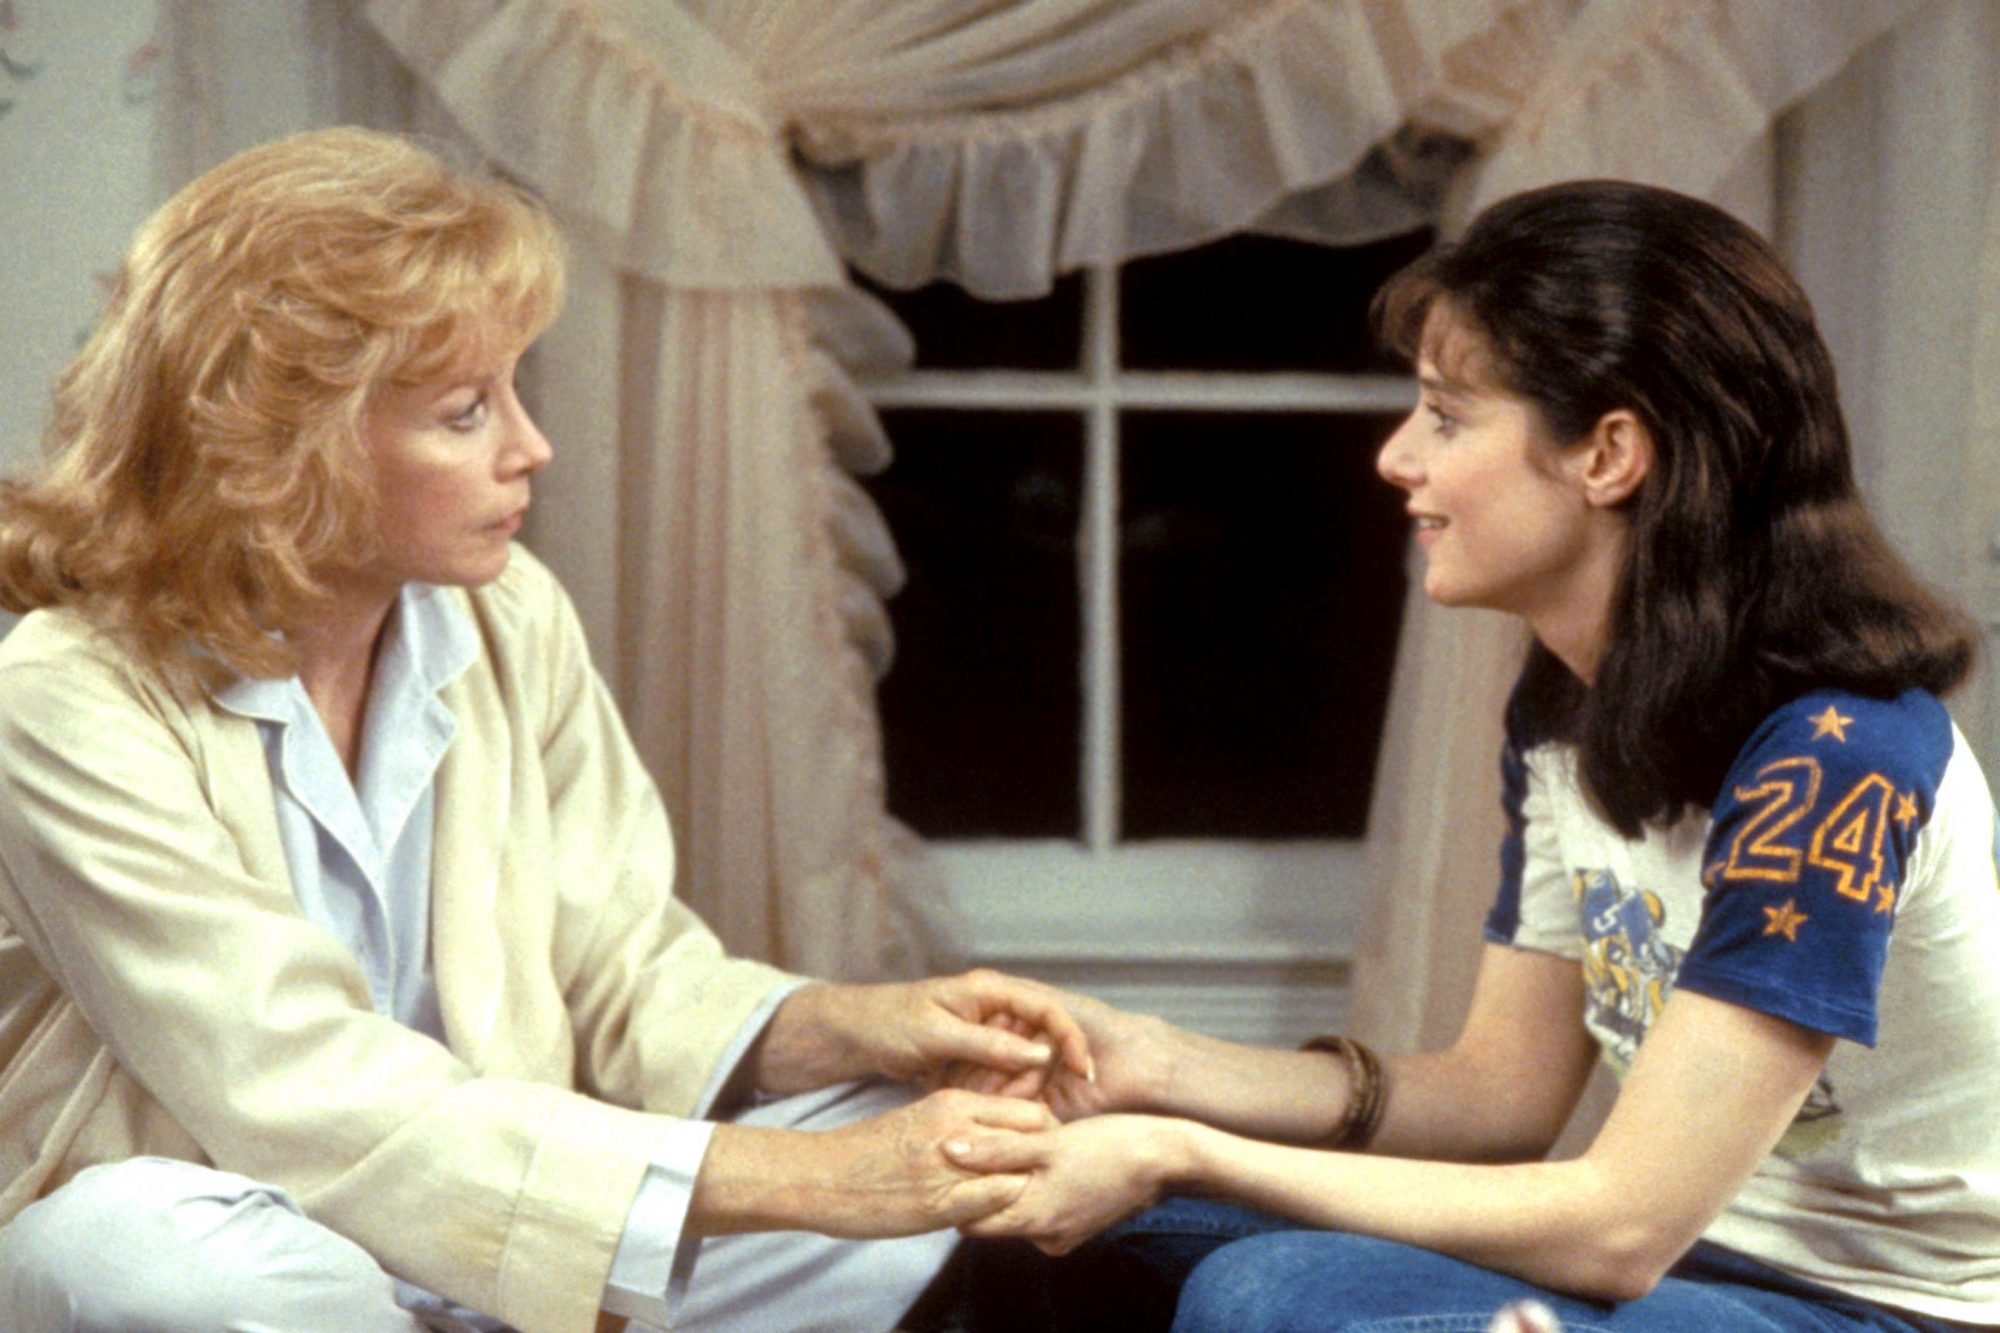 TERMS OF ENDEARMENT, Shirley MacLaine, Debra Winger, 1983, (c) Paramount/courtesy Everett Collection